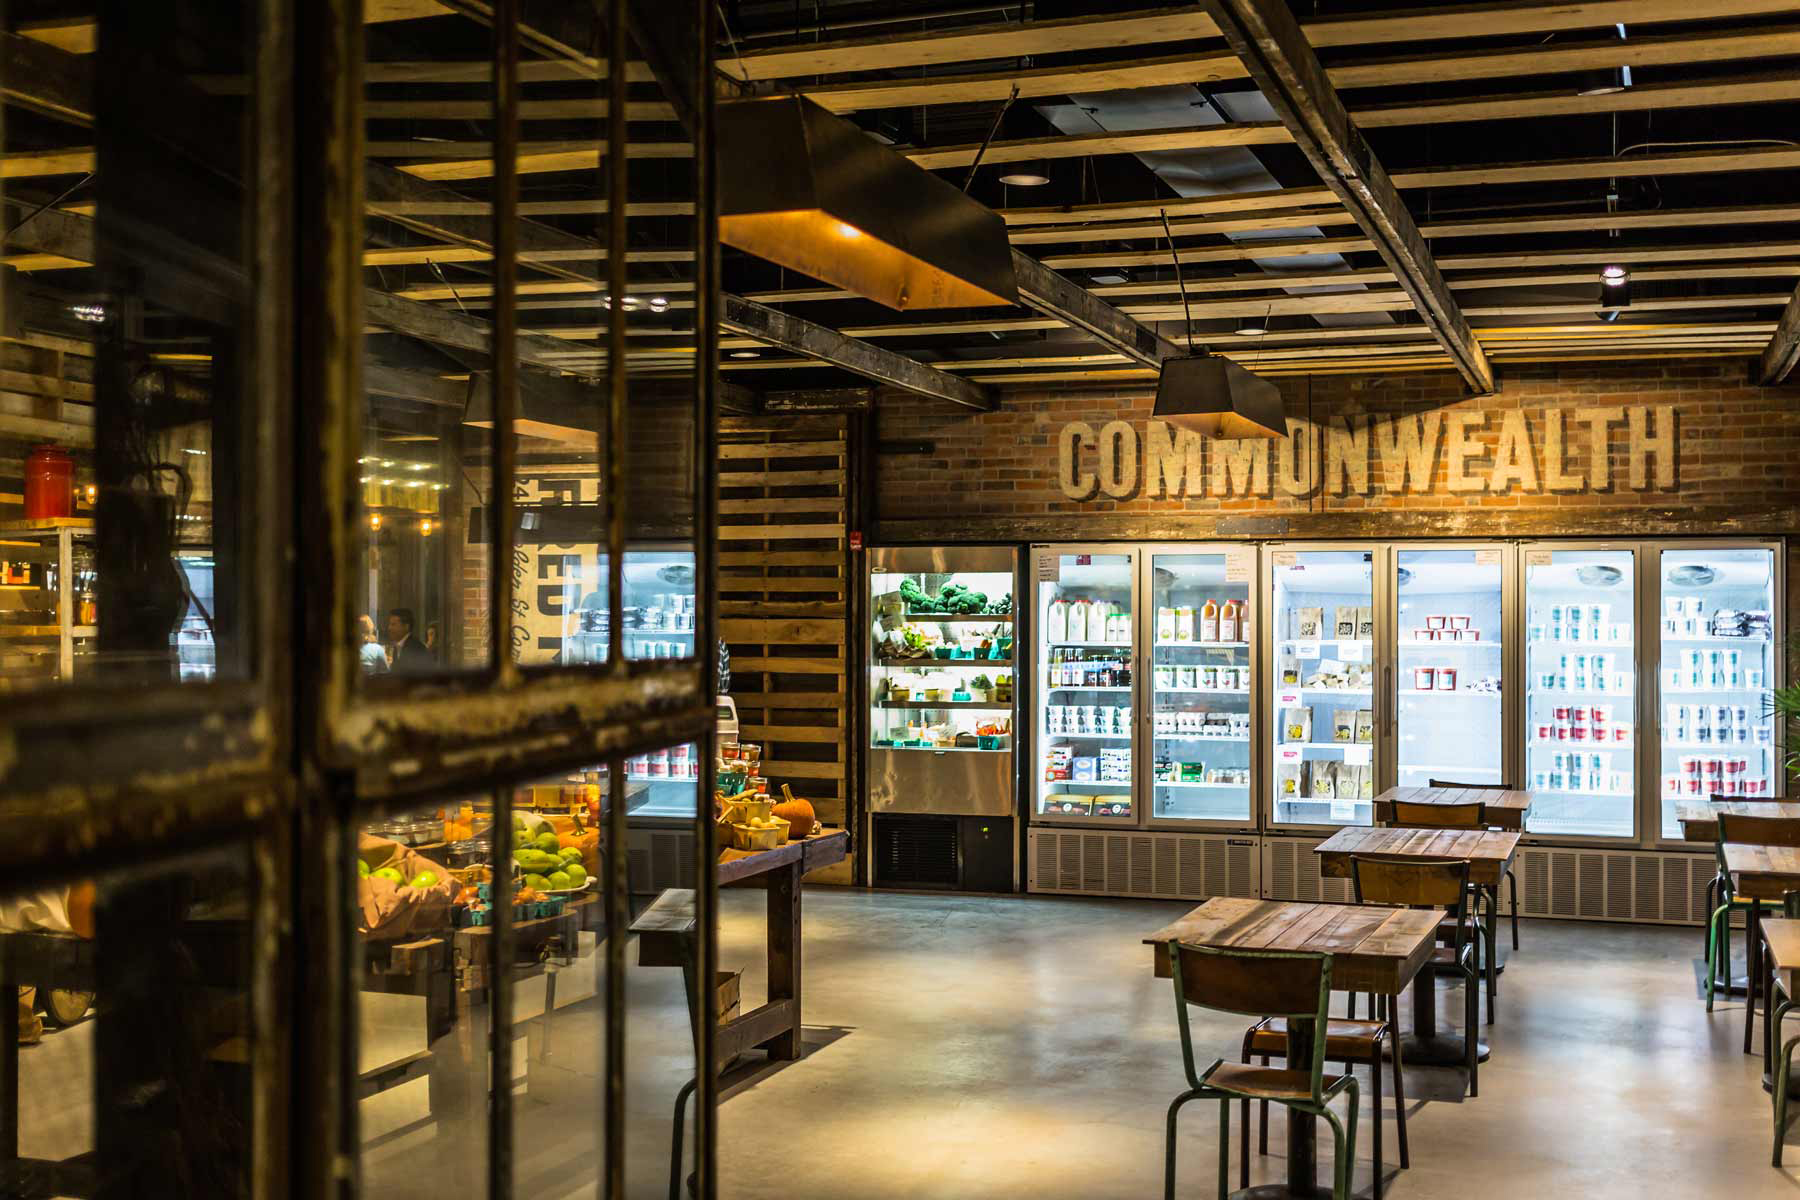 Commonwealth restaurant and market architect magazine